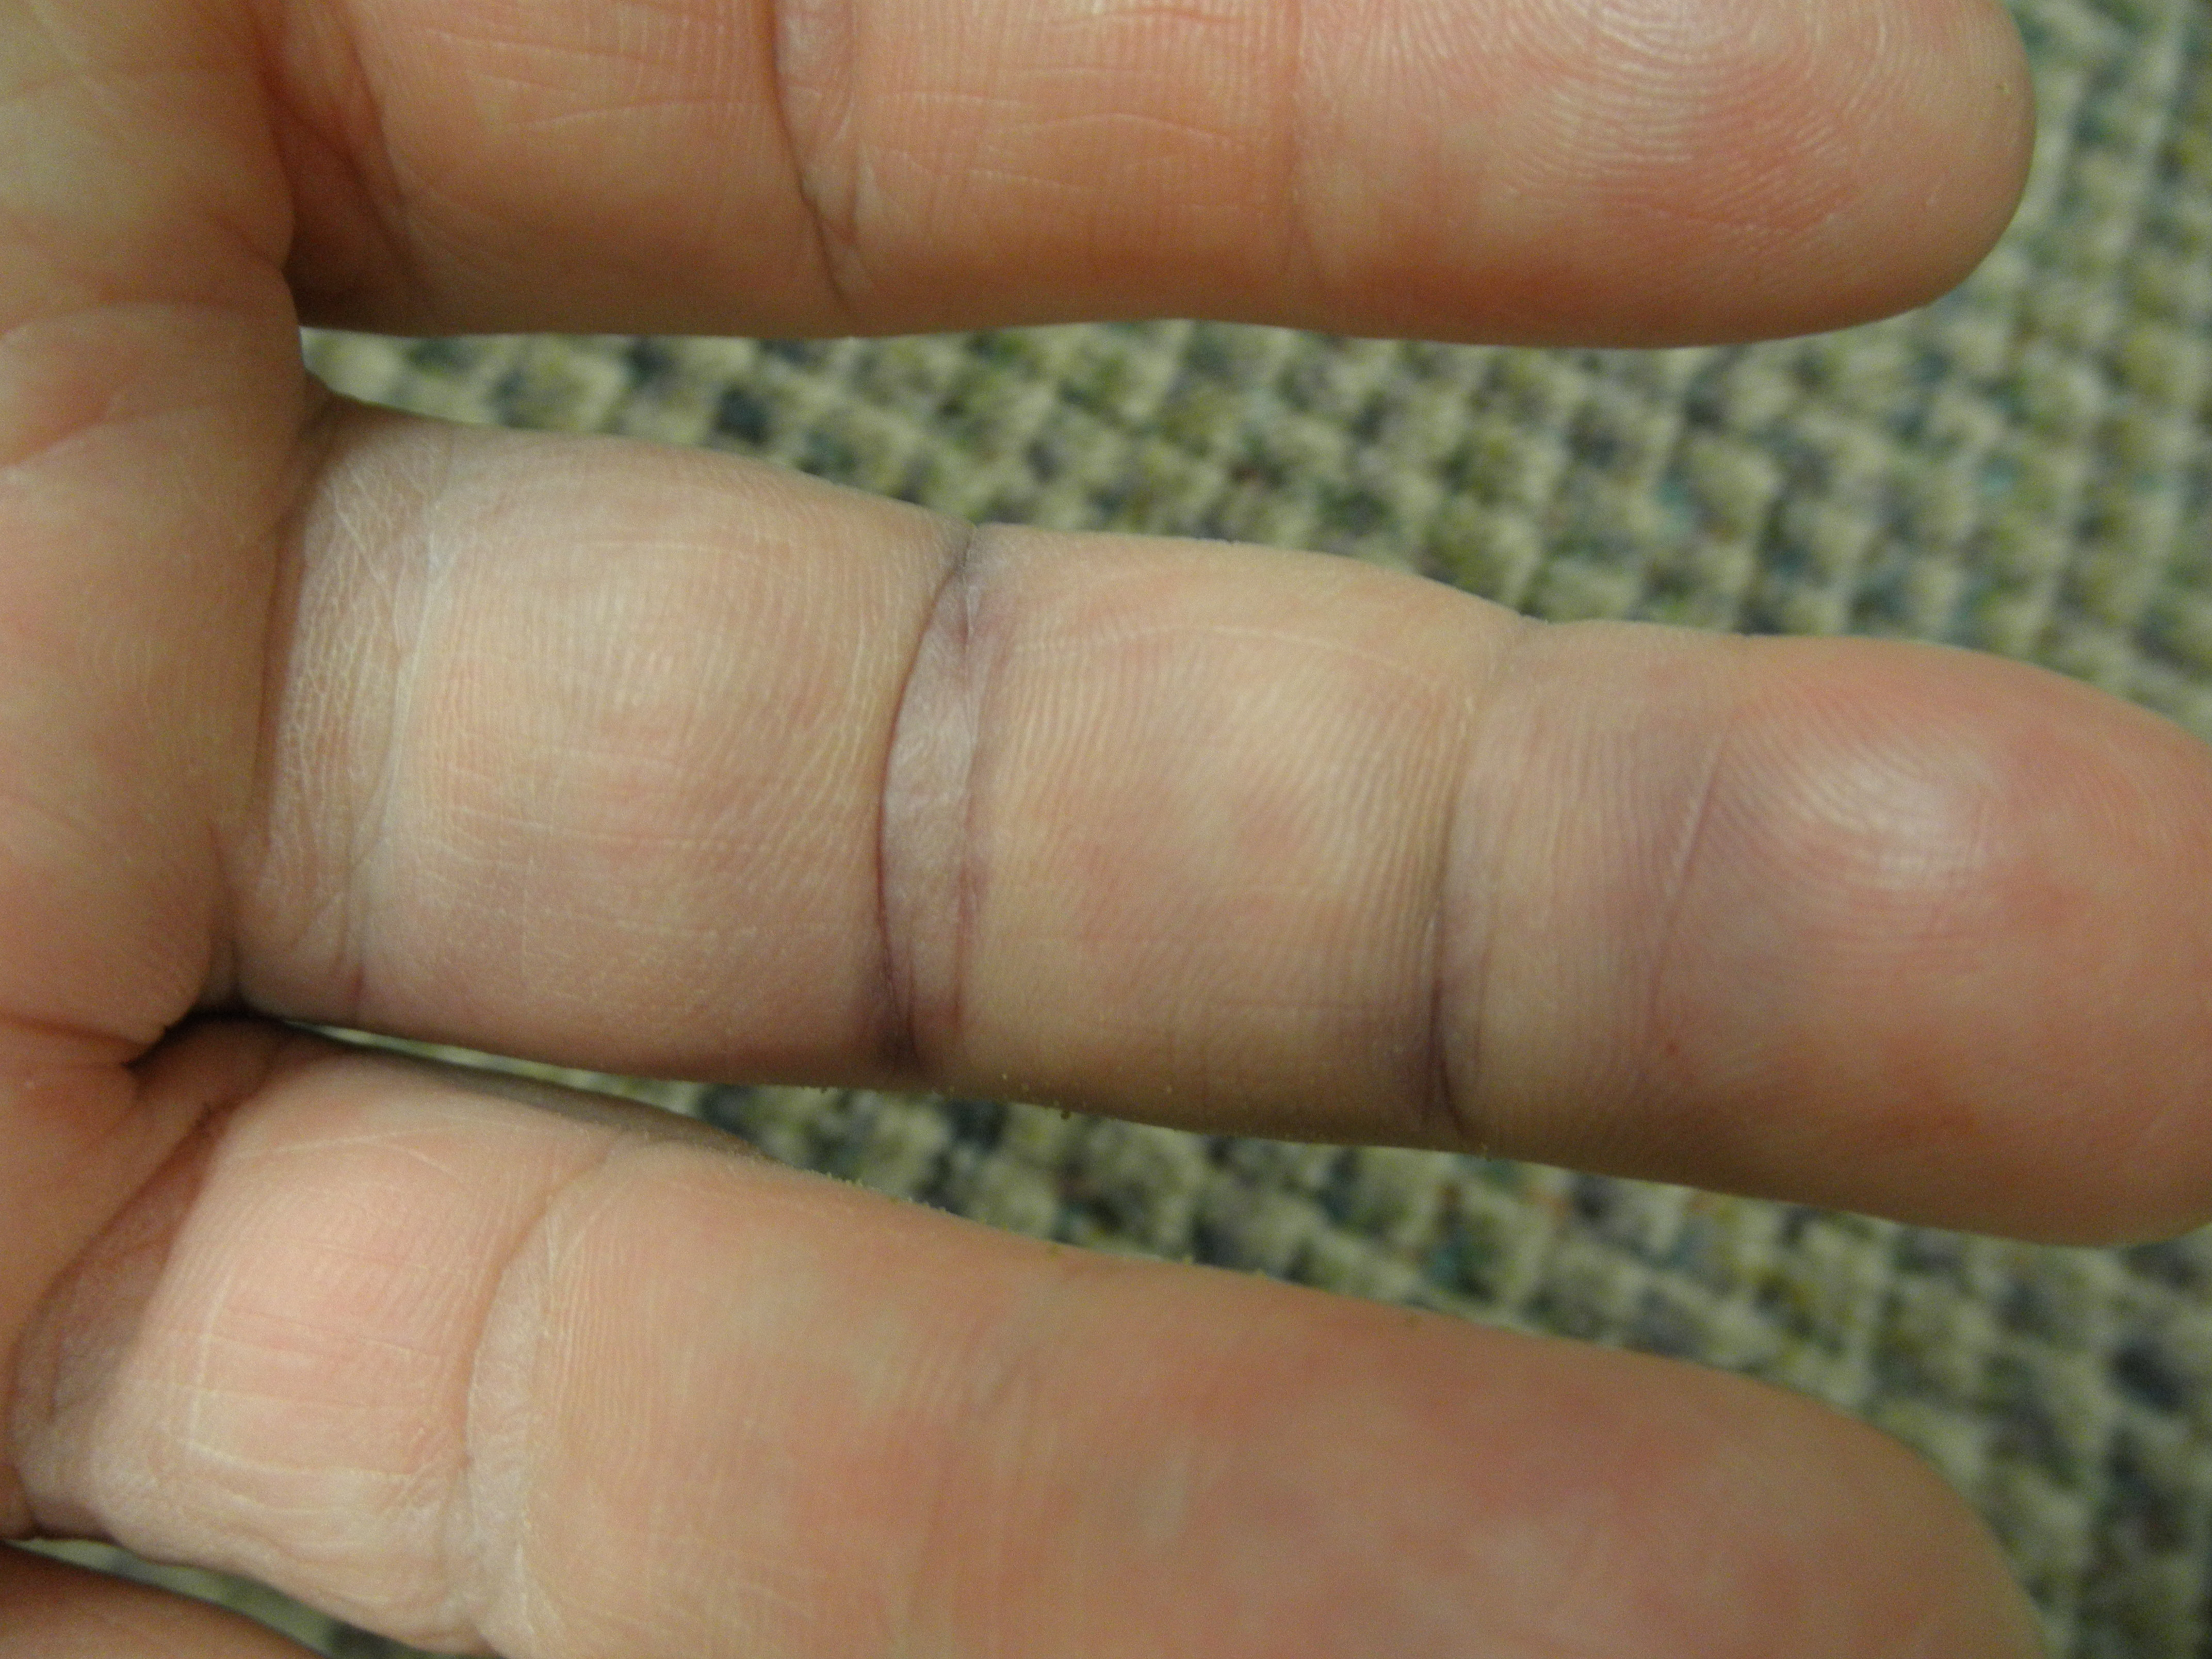 What can tell the picture on your finger